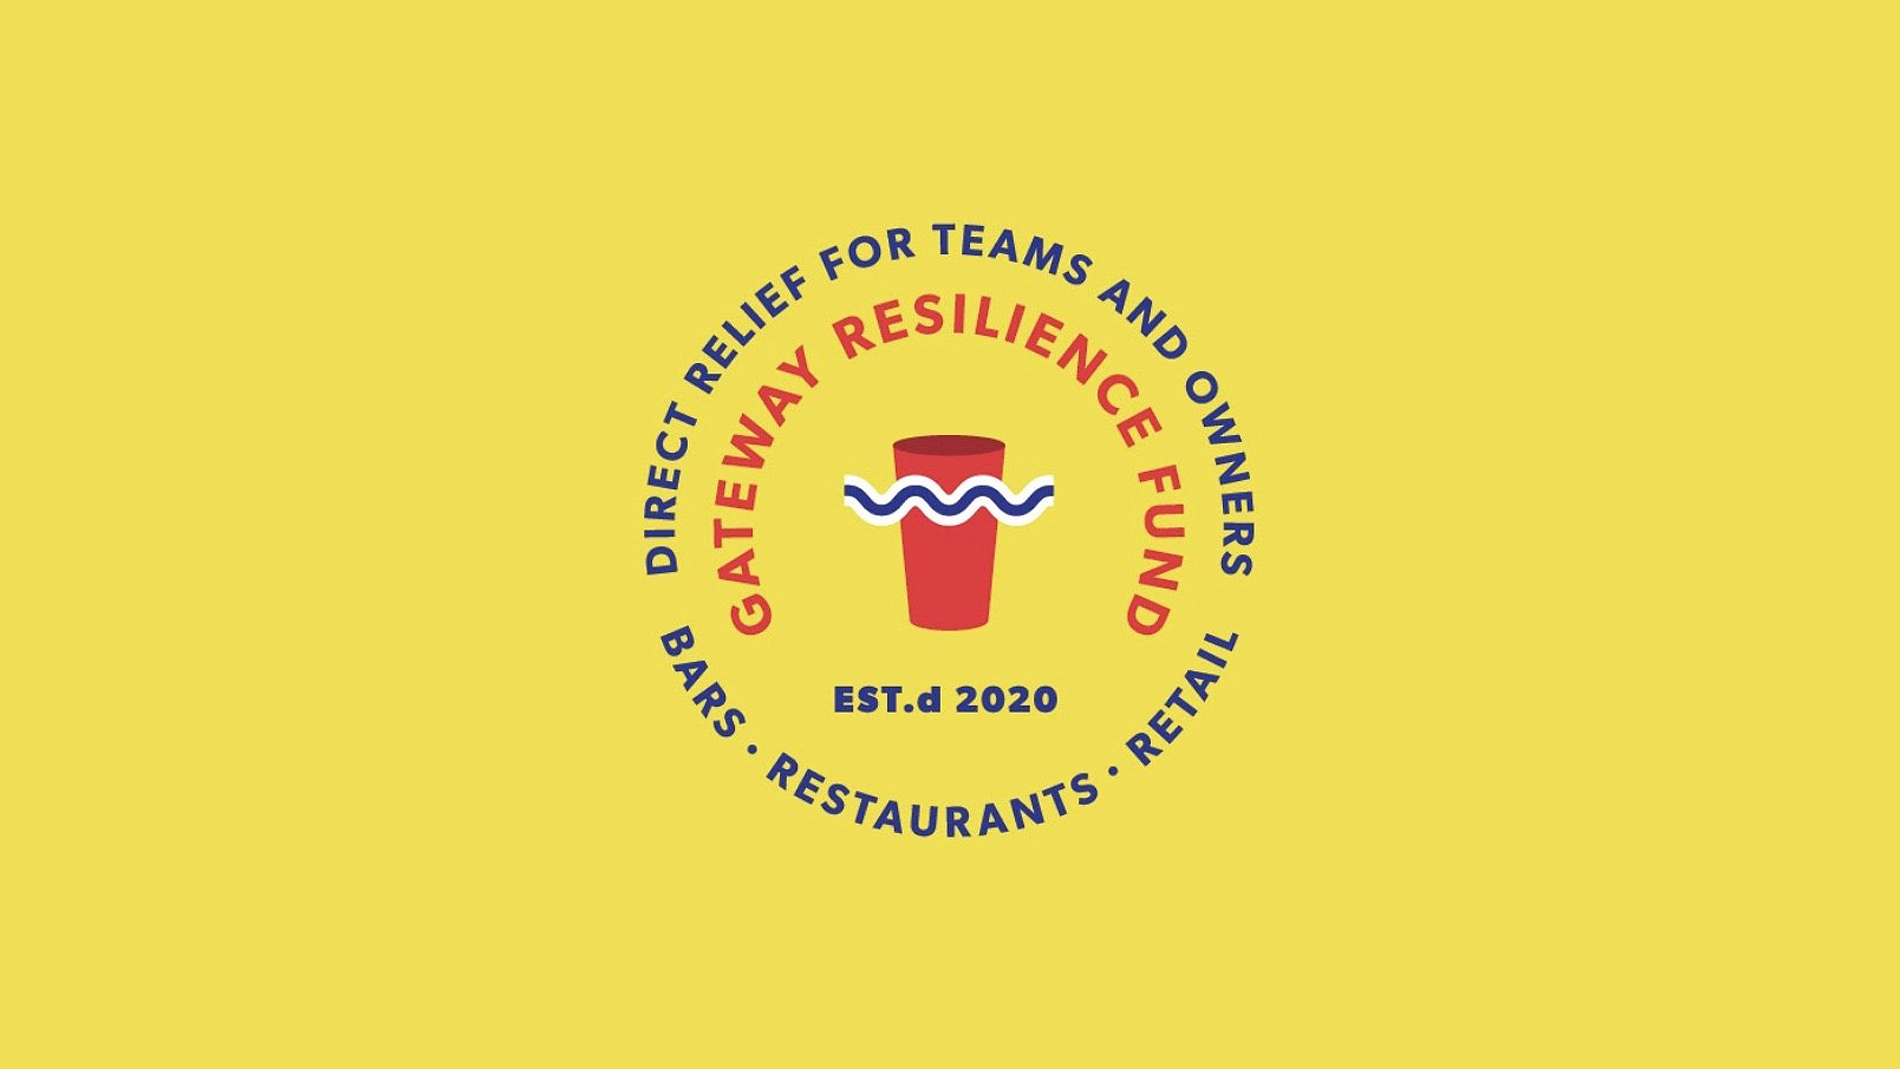 The Gateway Resilience Fund aims to raise millions for St. Louis business owners in need during the coronavirus outbreak.